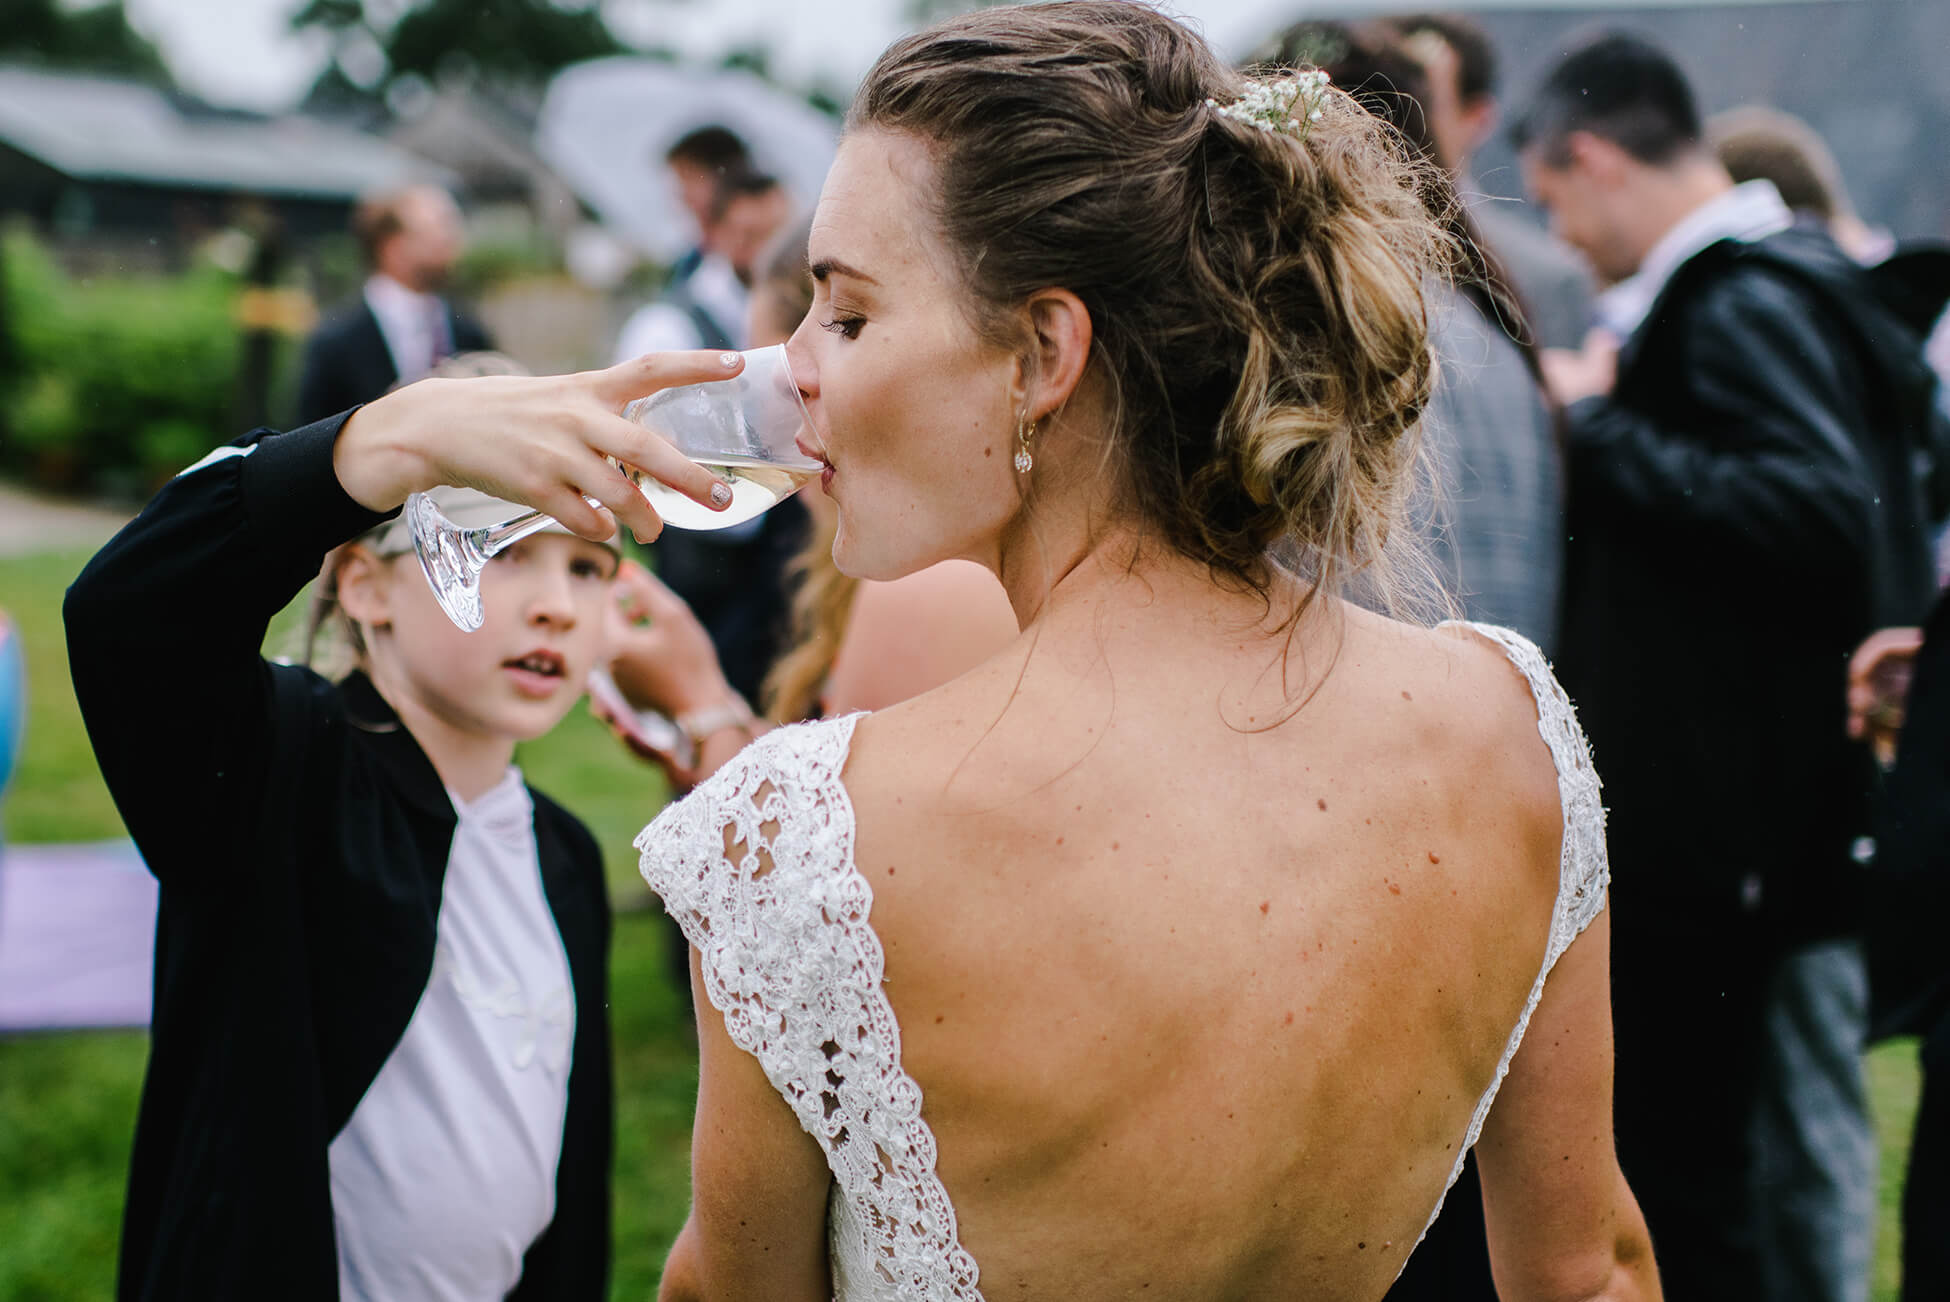 bride drinking wine